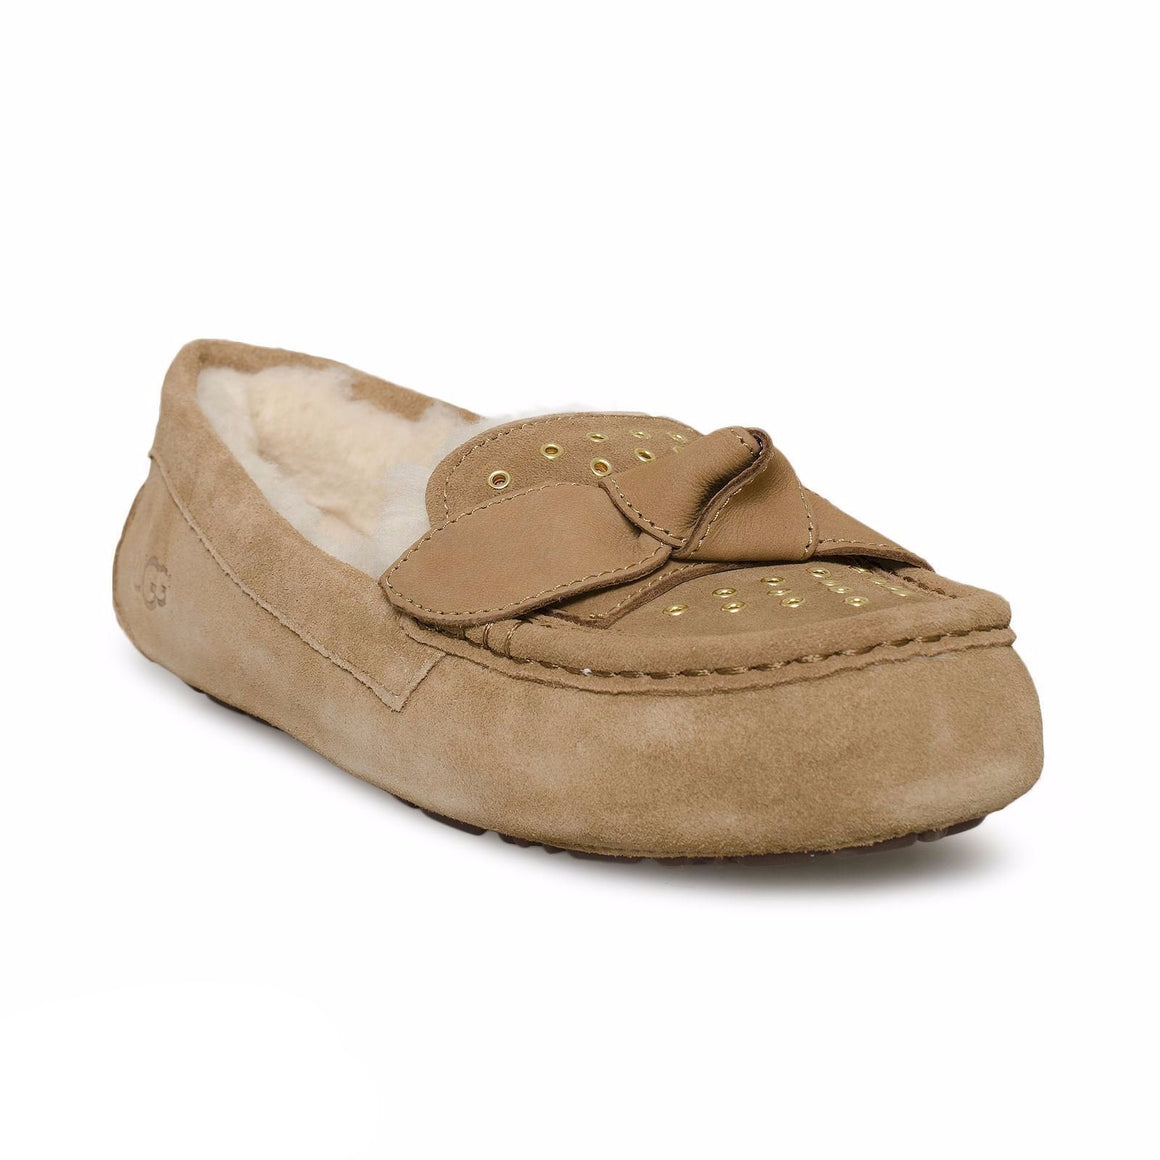 UGG Rheanna Chestnut Slippers